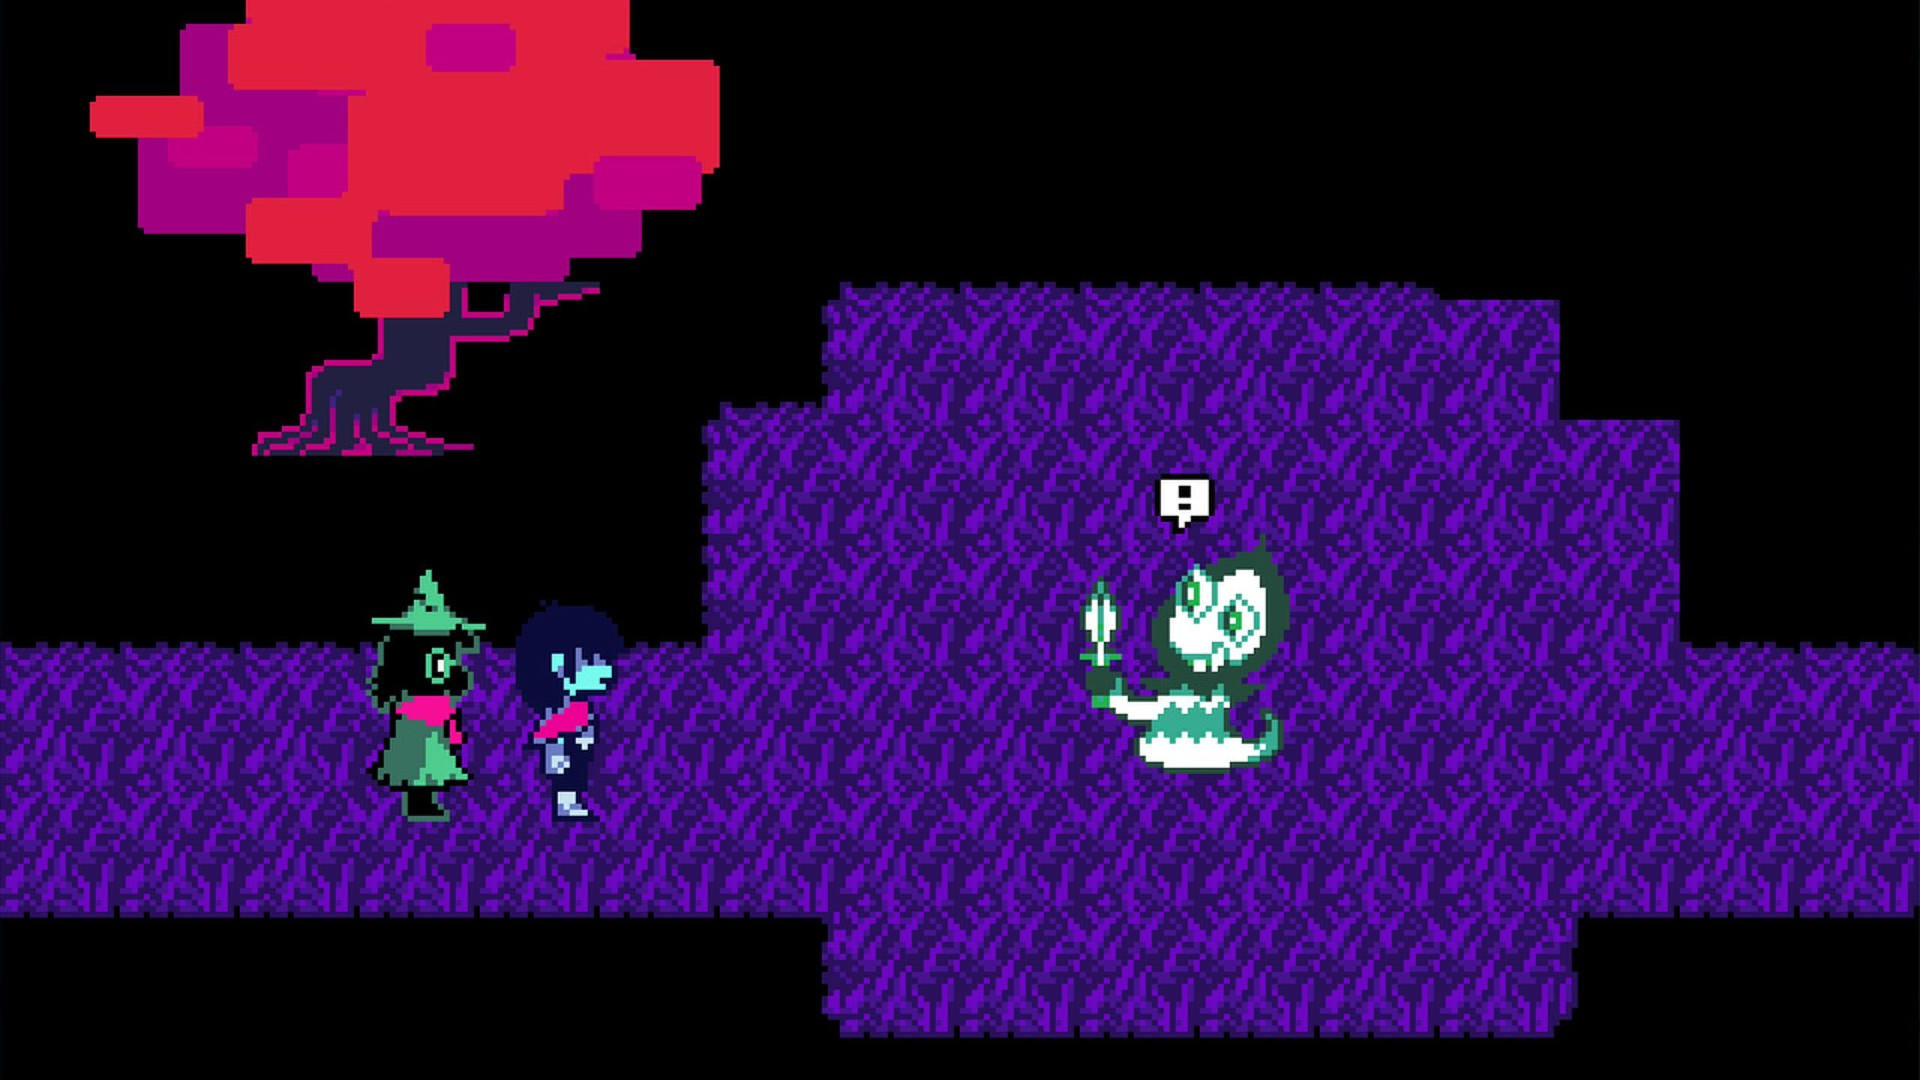 Deltarune comes to Steam, breaks 100k concurrent players